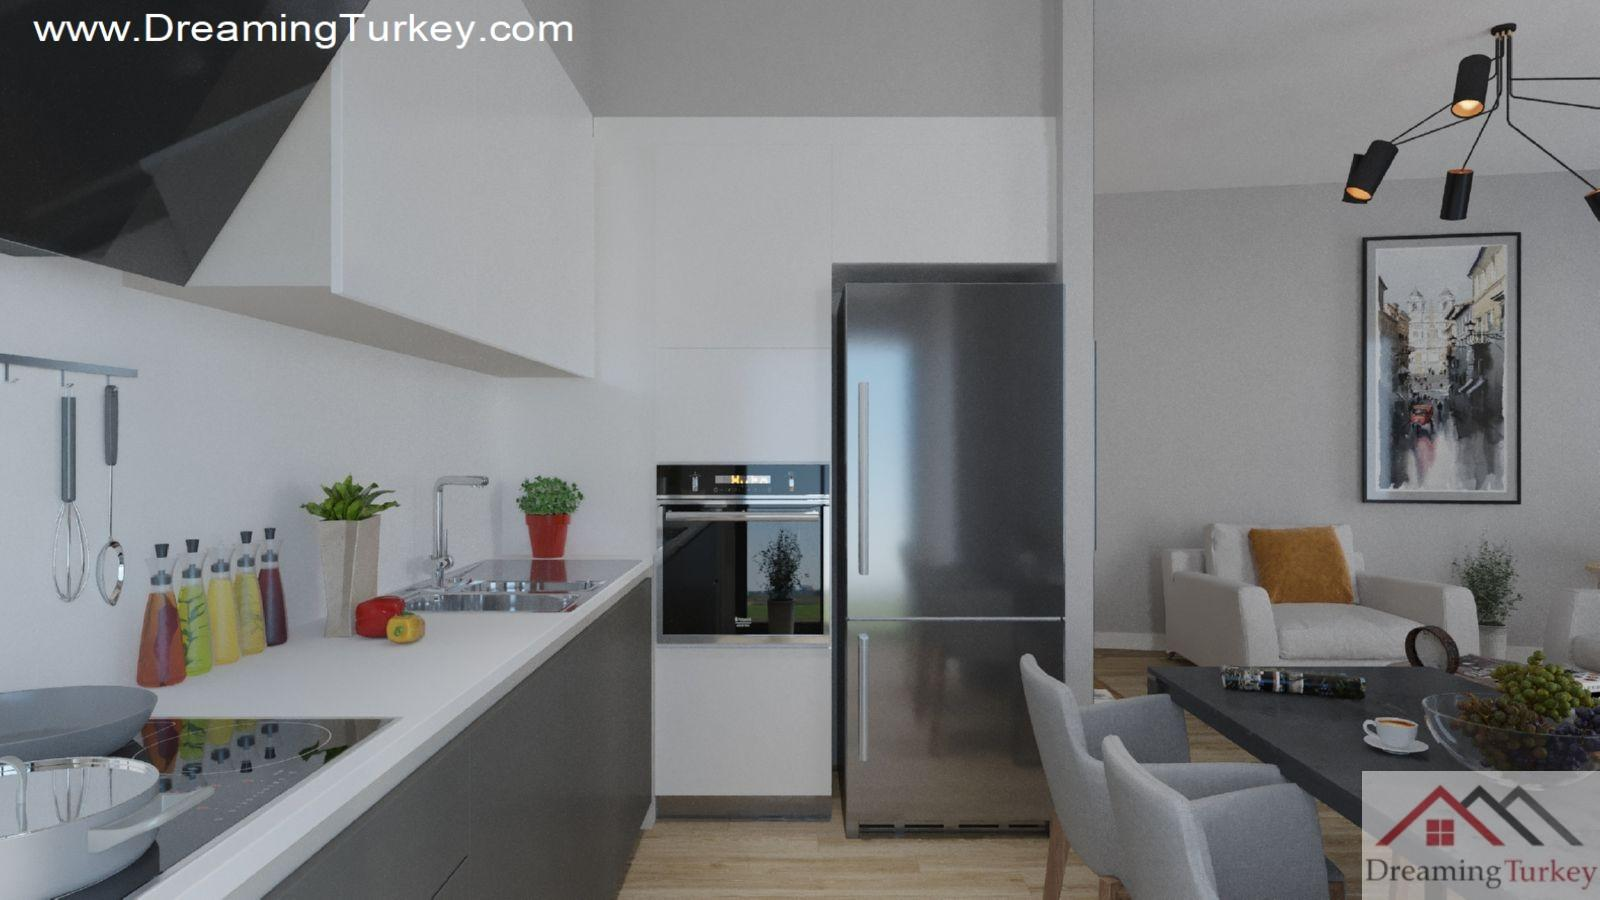 2-Bedroom Apartment Near the Lake in Istanbul